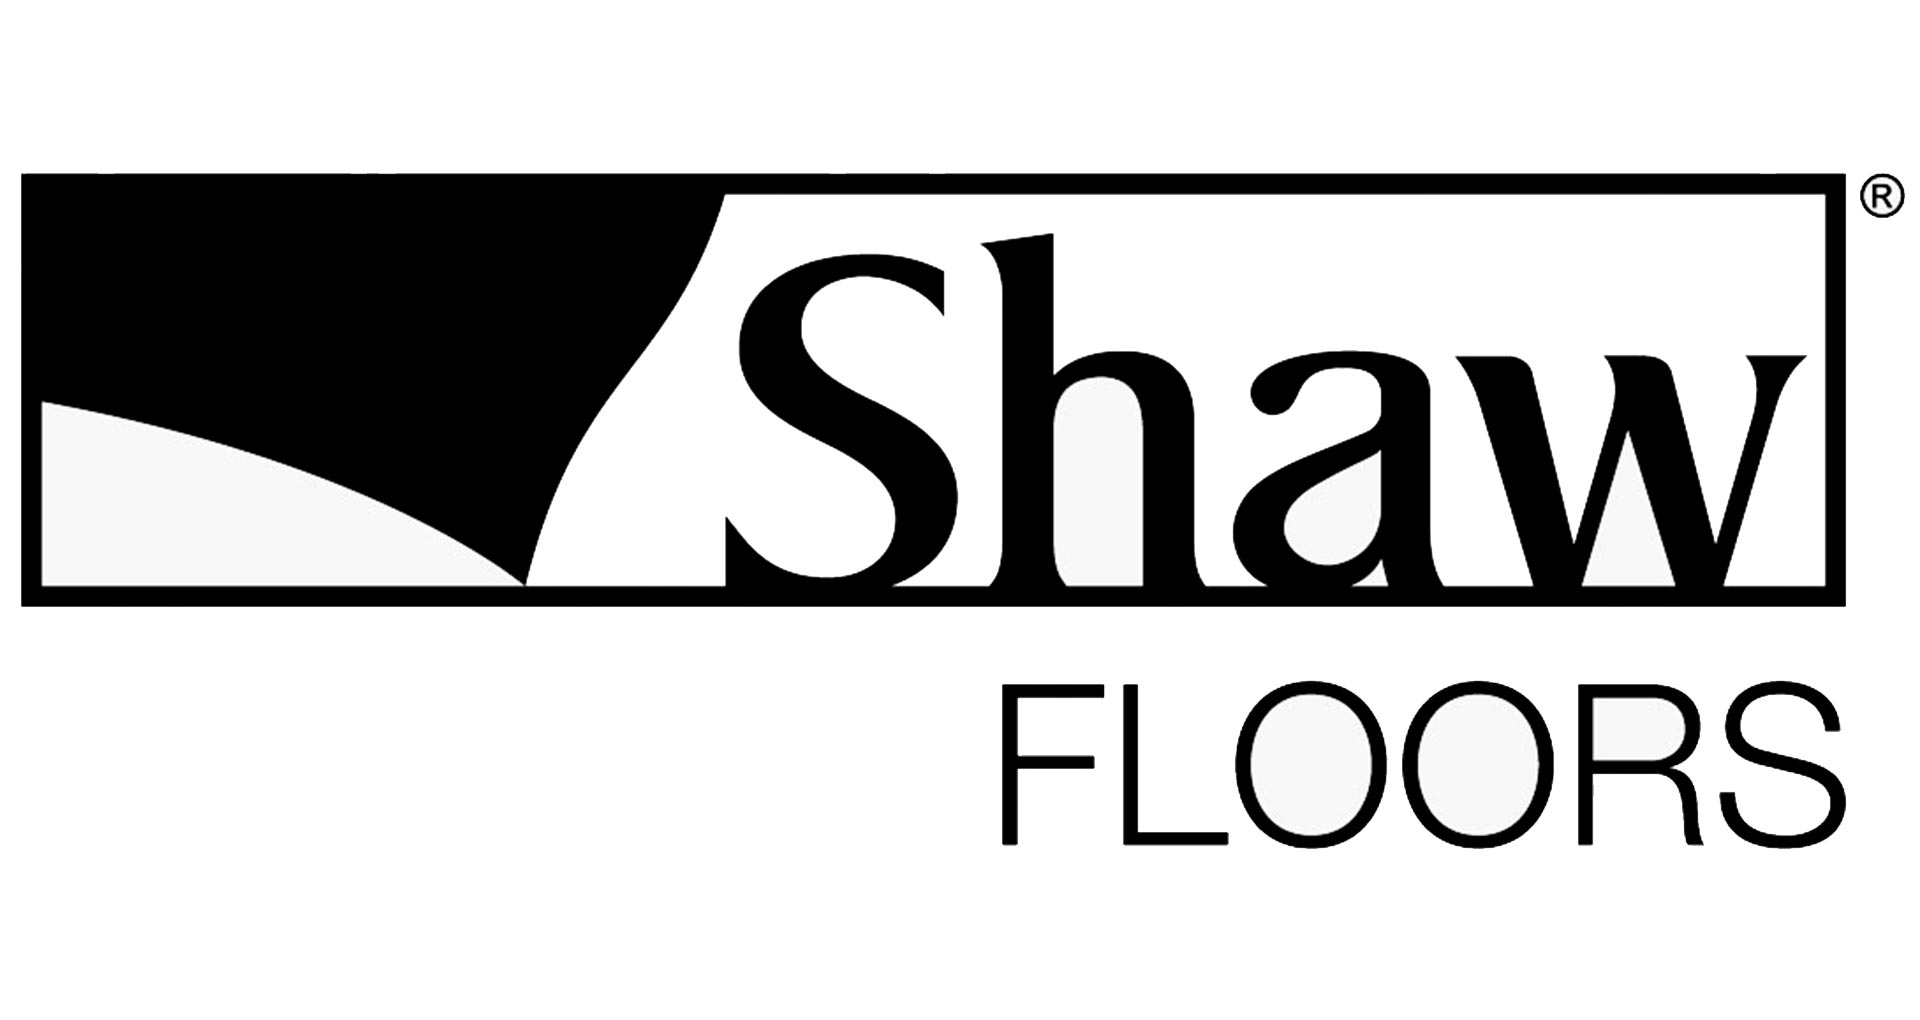 Shaw Floors Logos